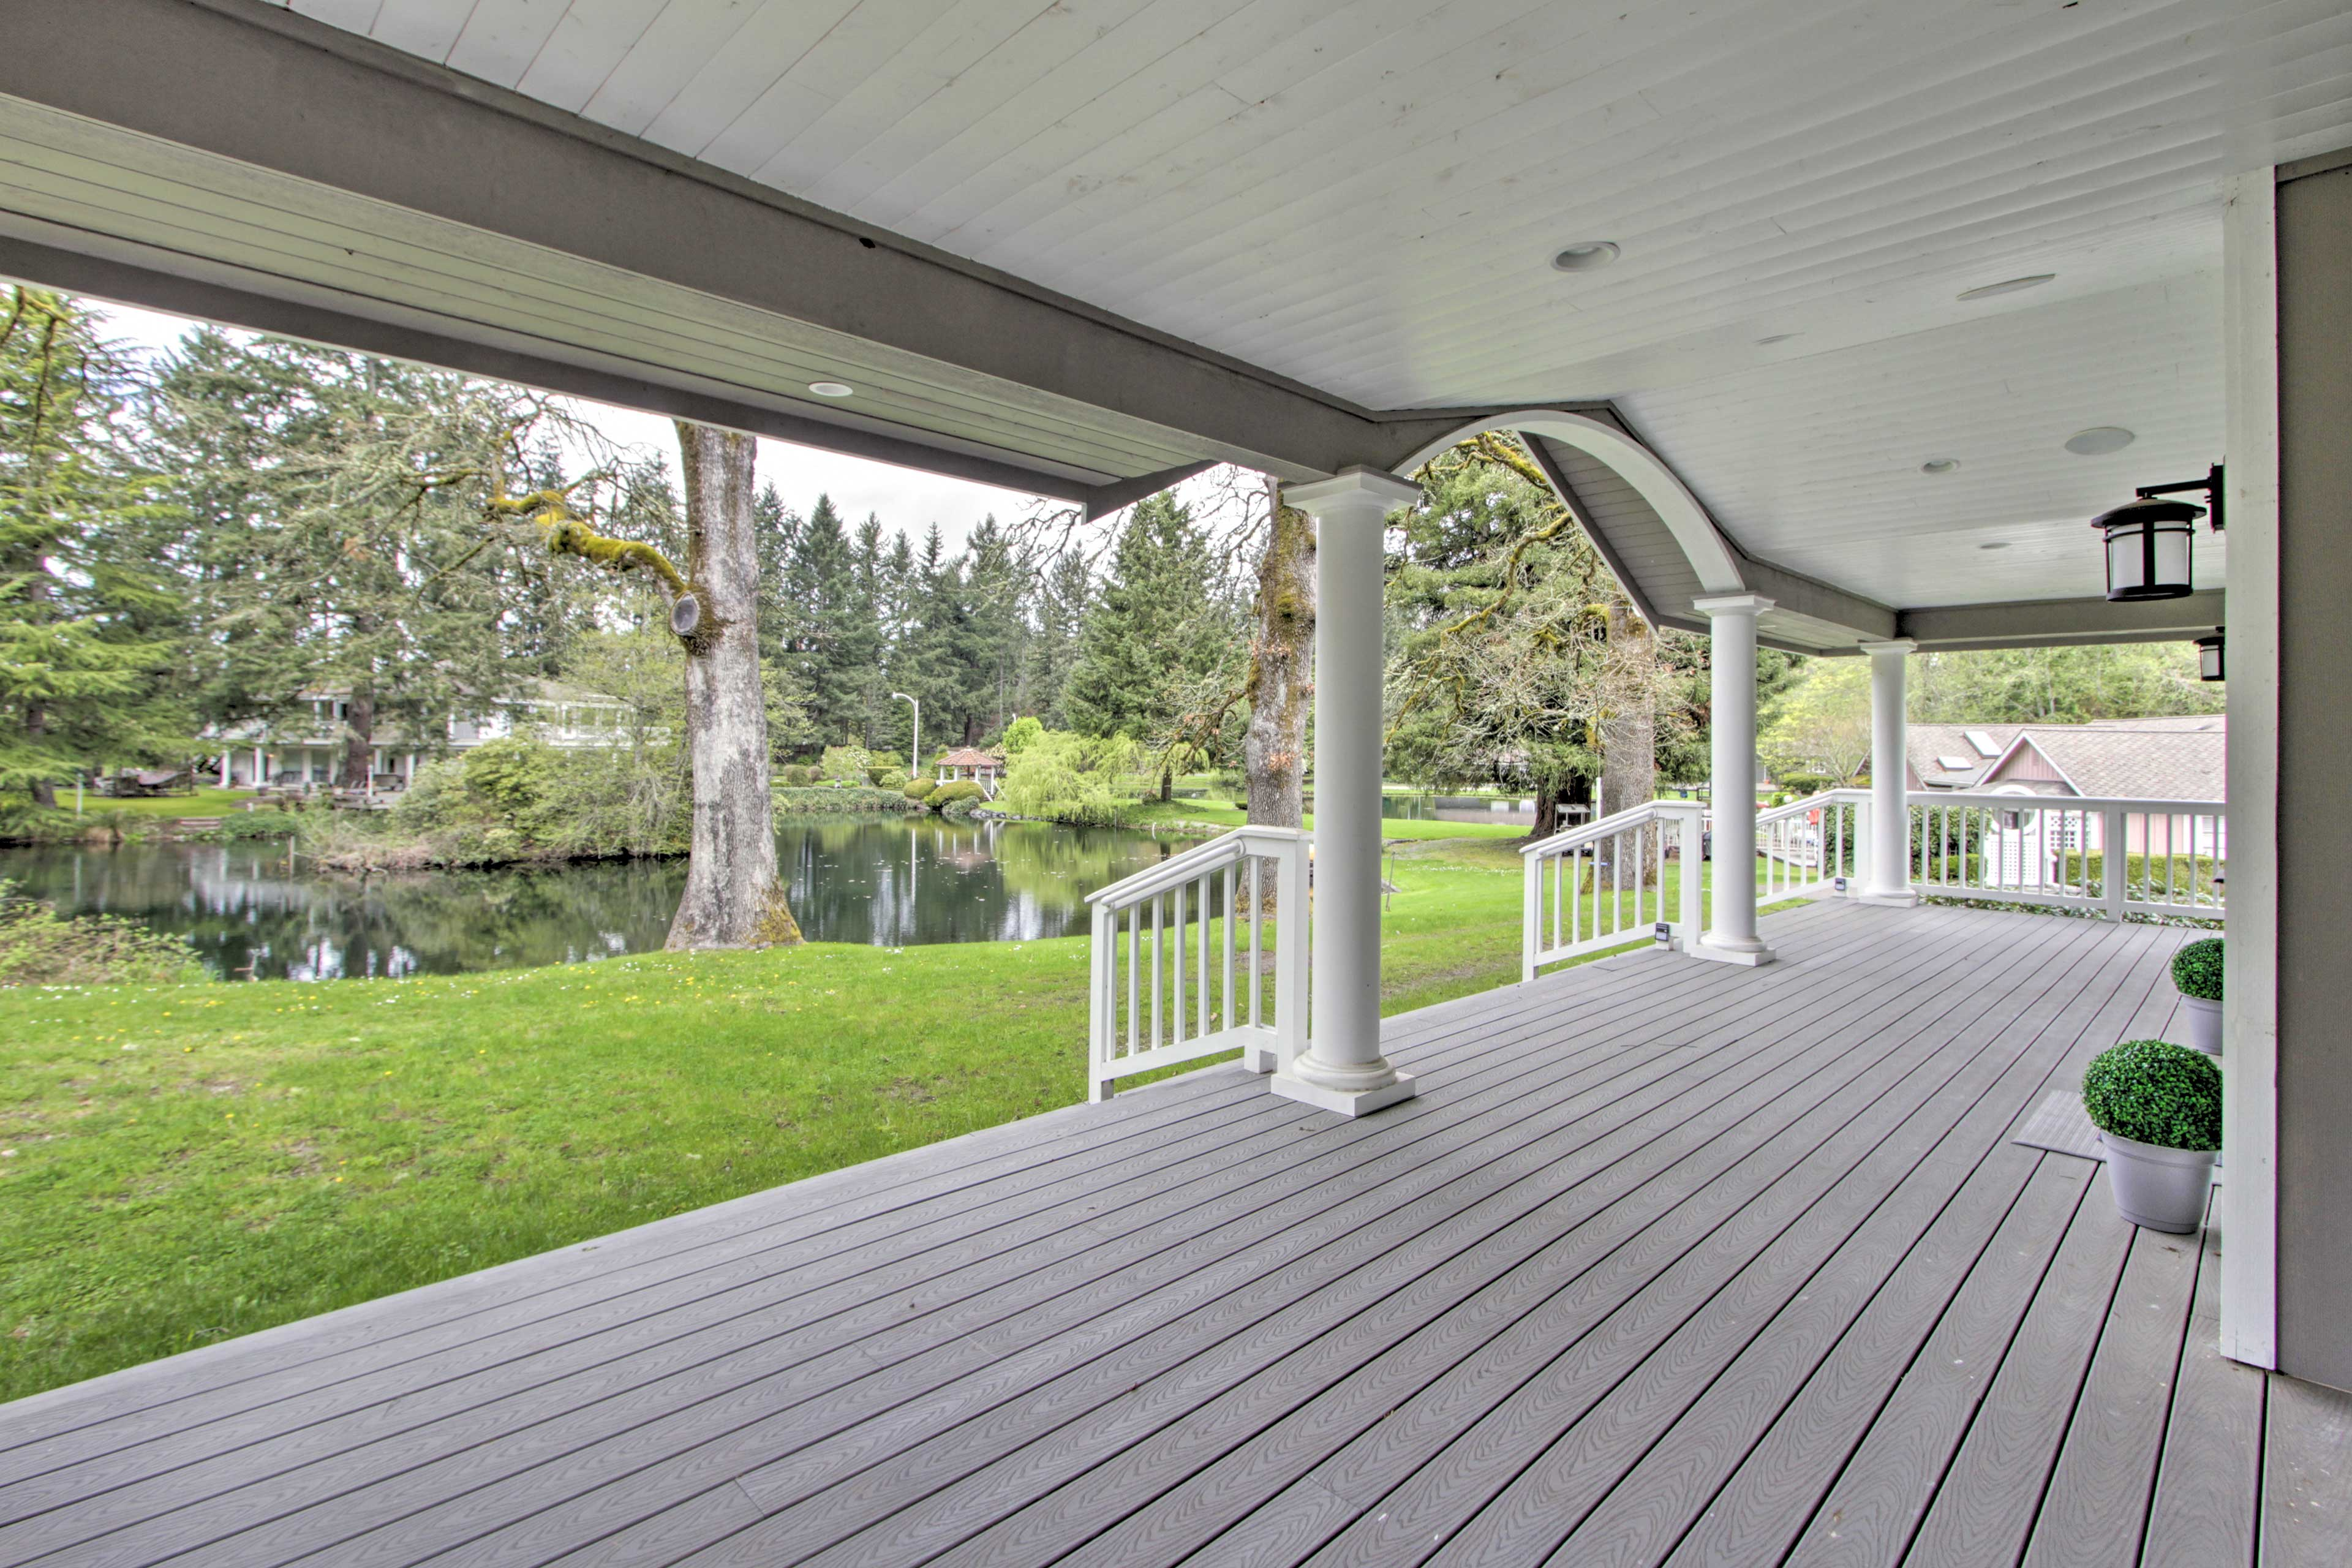 Step outside to enjoy this tranquil and lush Washington setting.